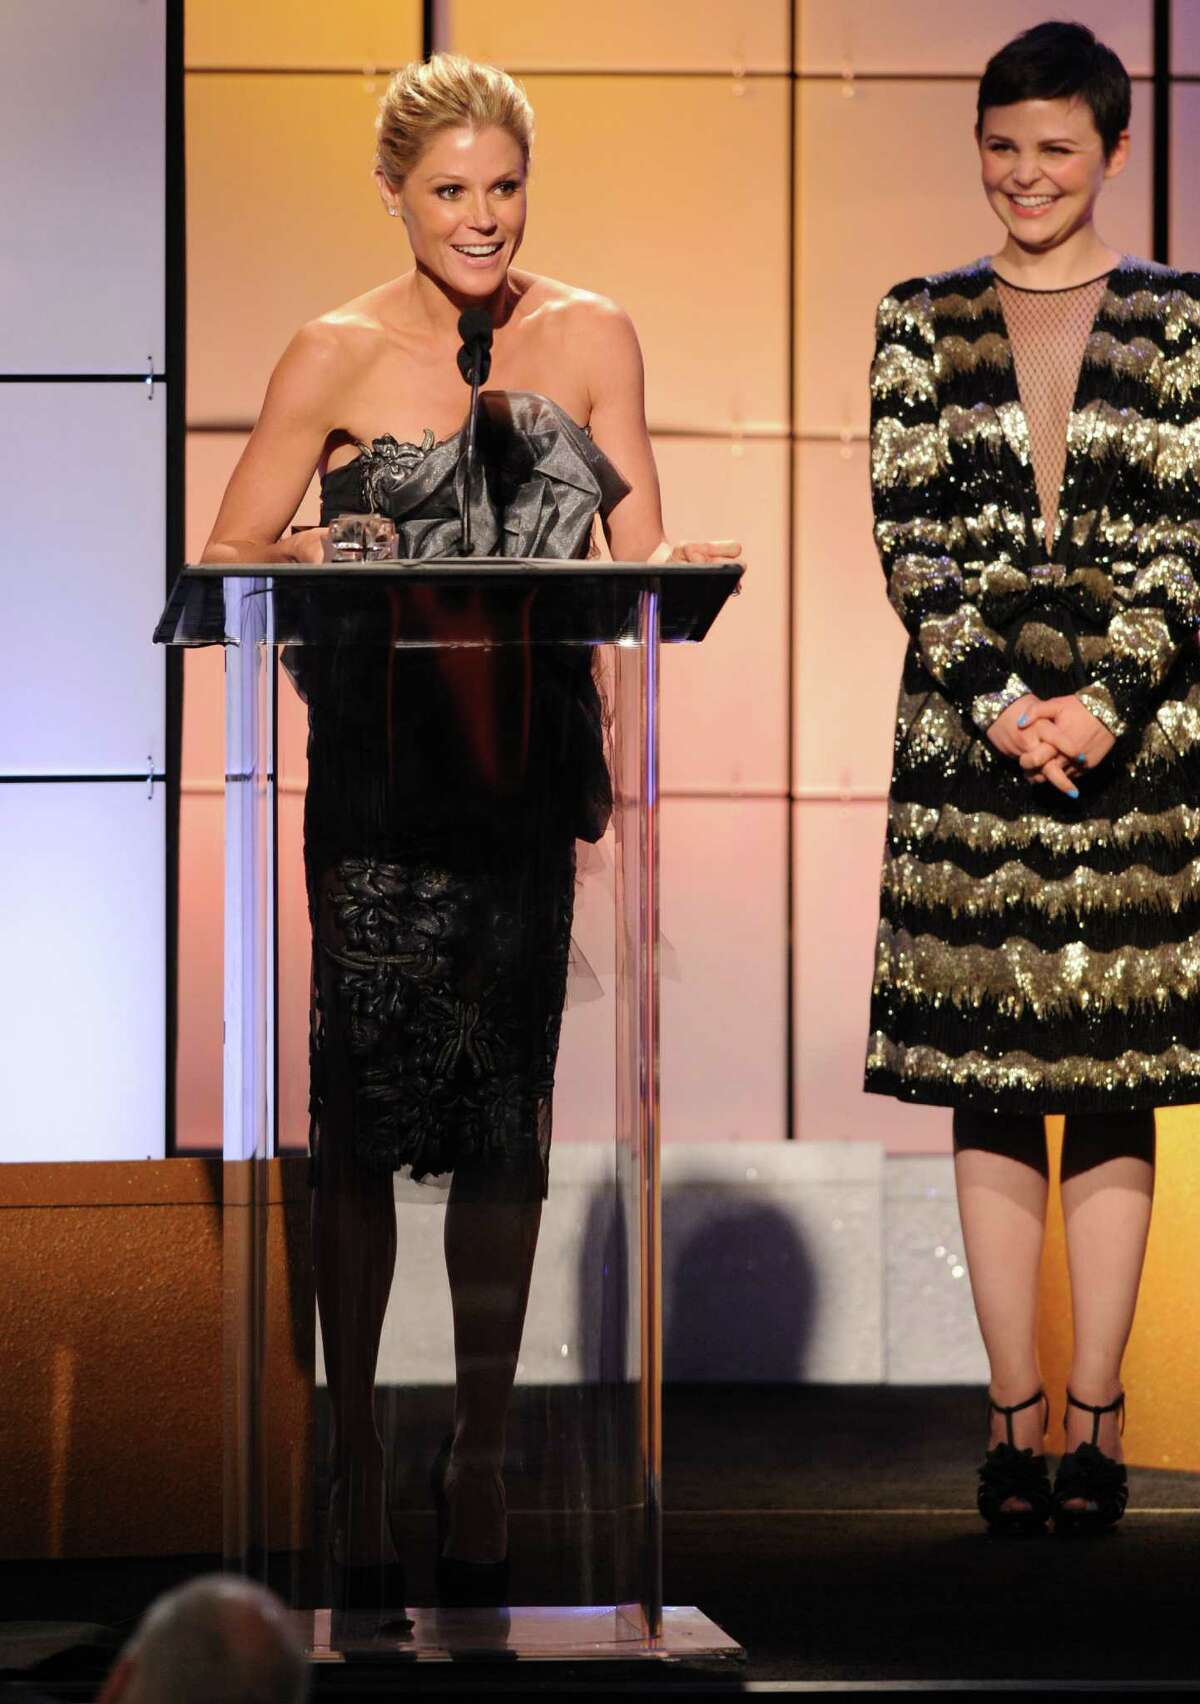 Julie Bowen accepts the award for best supporting actress in a comedy for